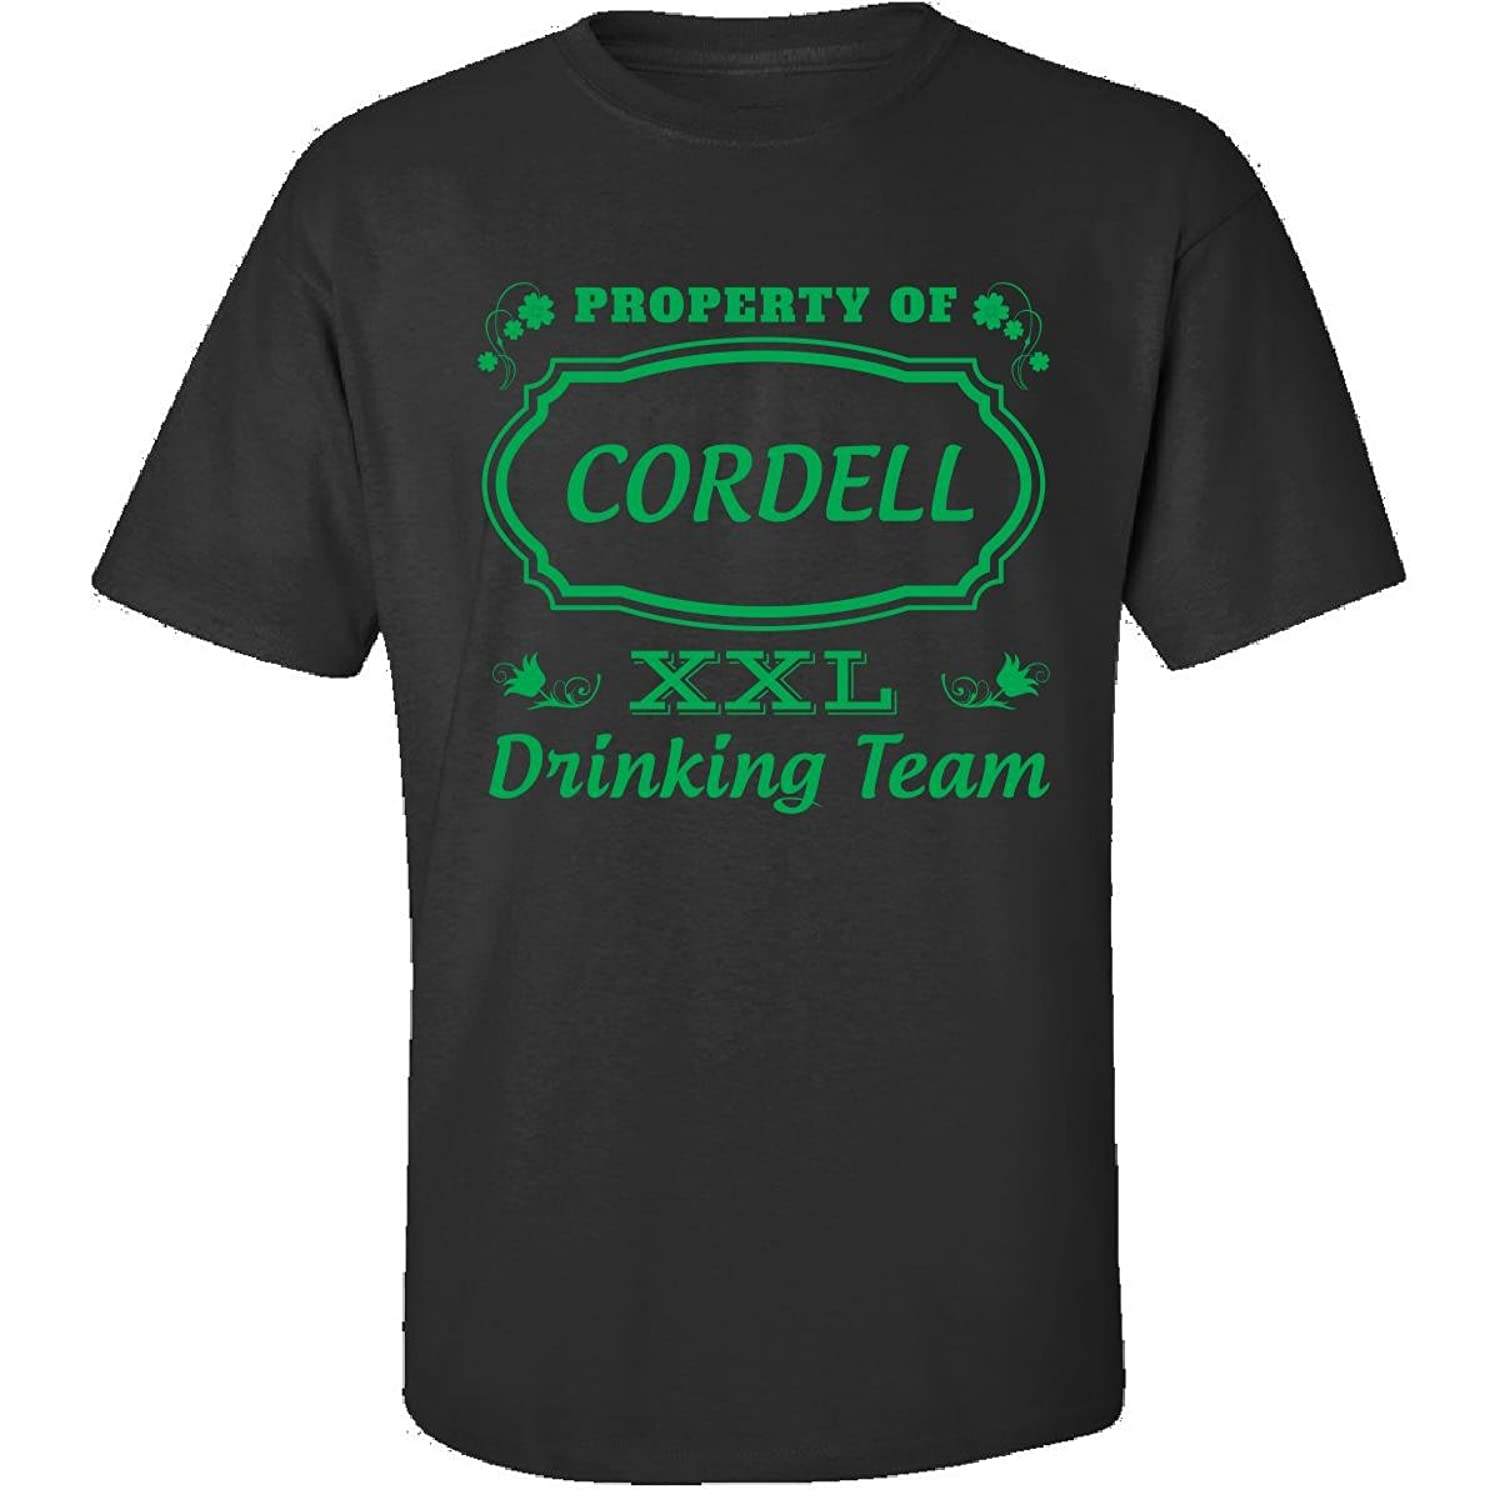 Property Of Cordell St Patrick Day Beer Drinking Team - Adult Shirt